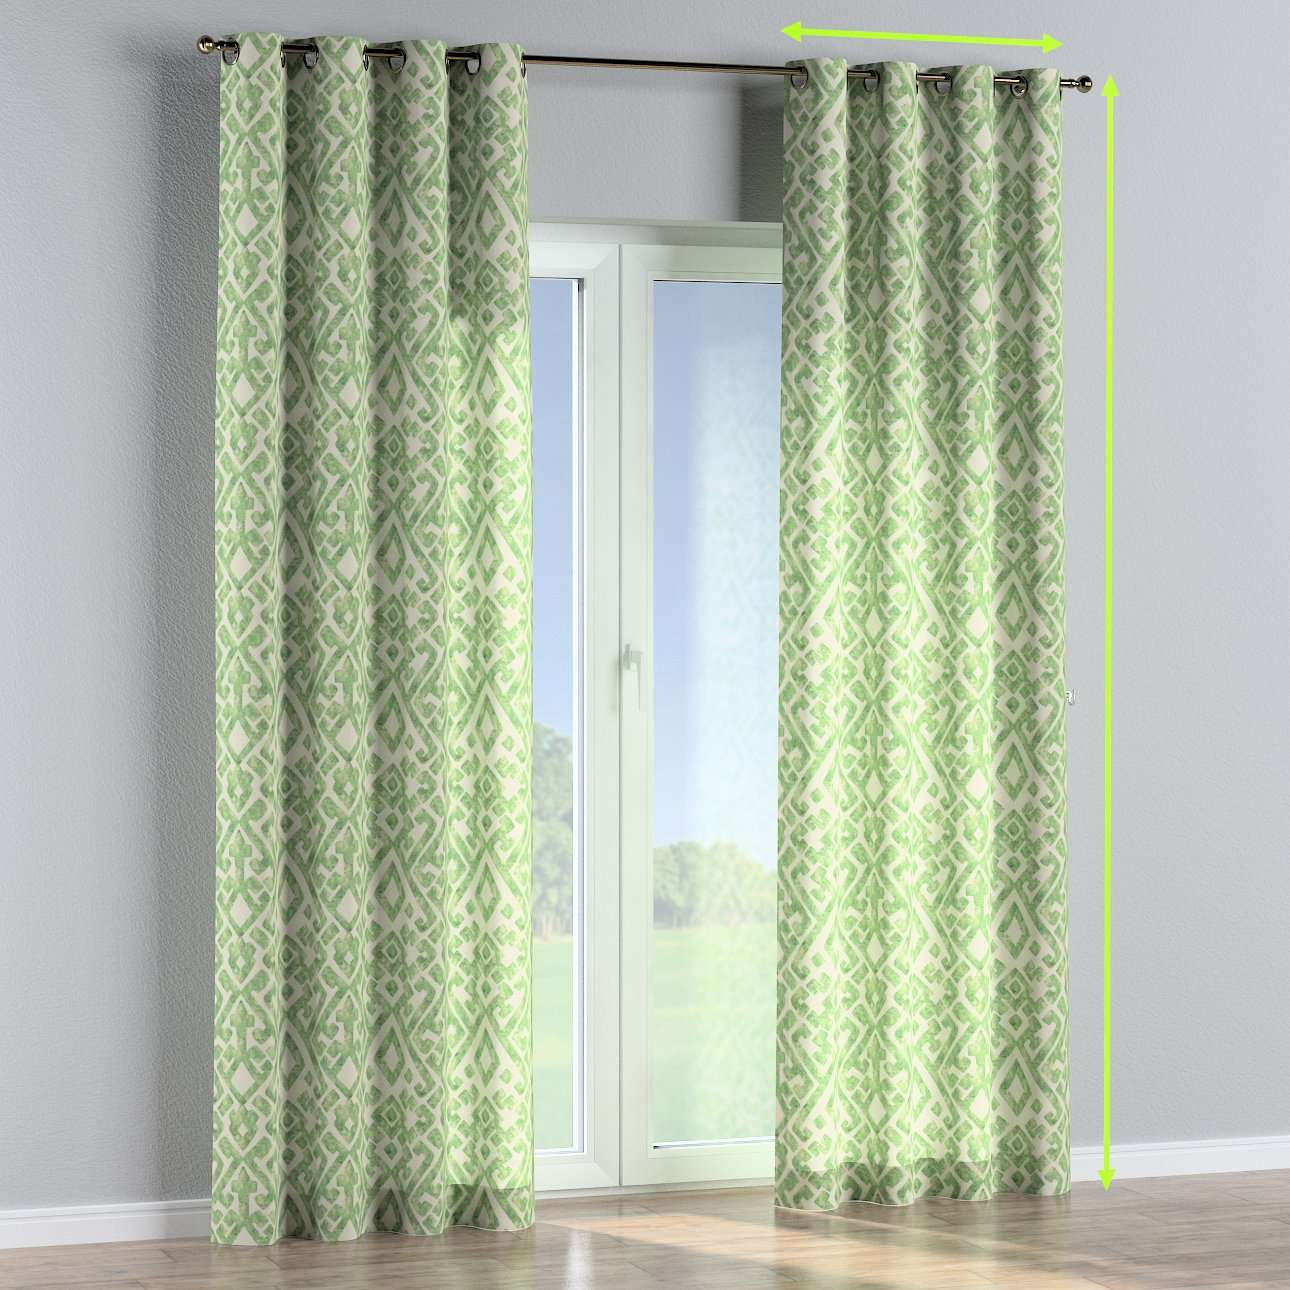 Eyelet lined curtains in collection Urban Jungle, fabric: 141-62